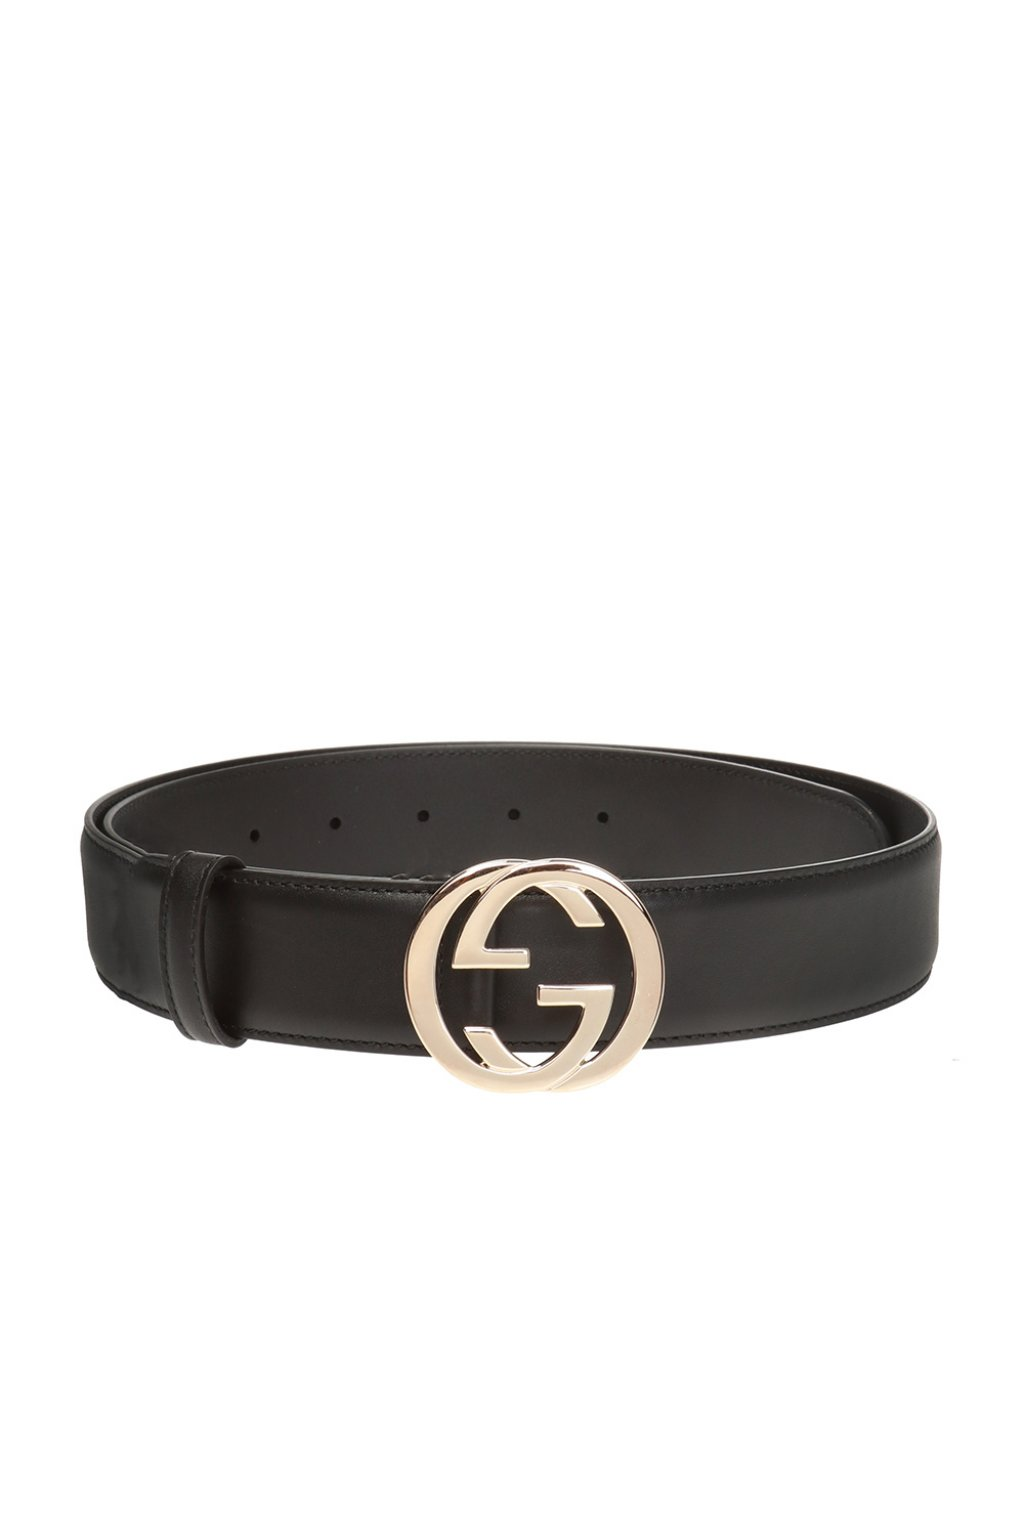 Gucci Decorative buckle belt